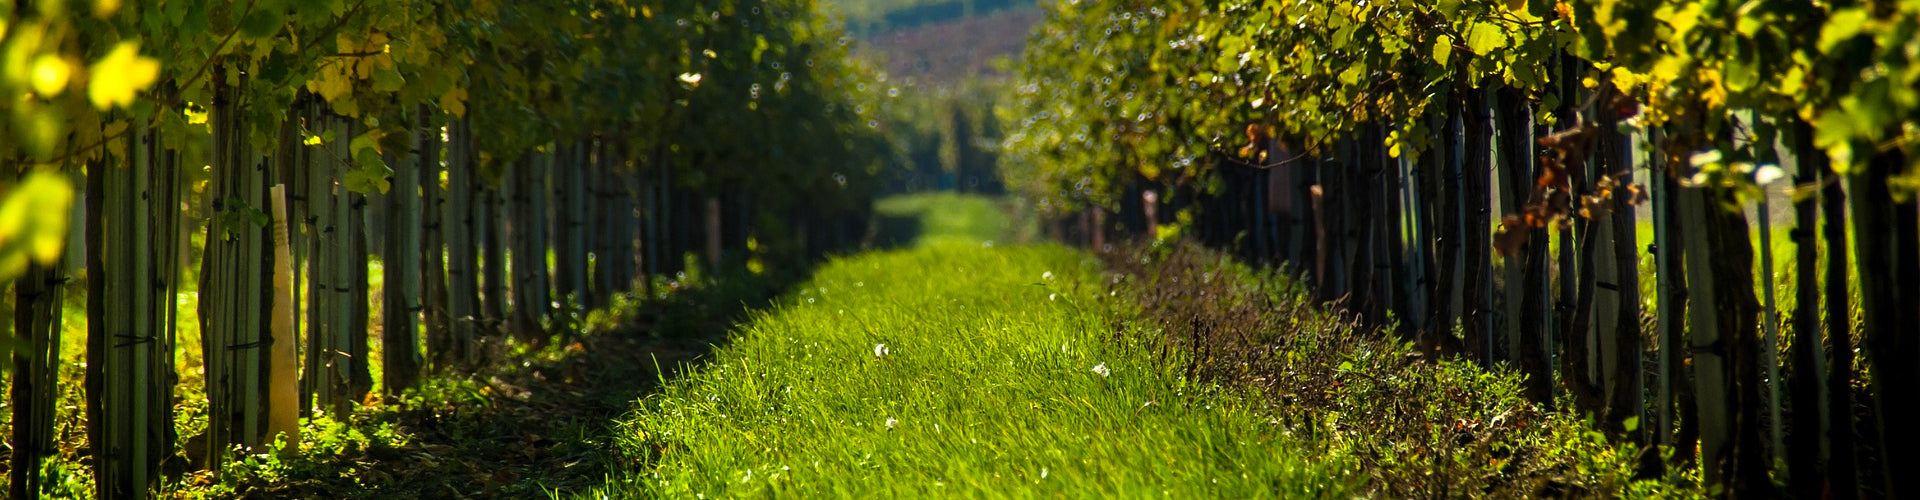 Organic Vineyard with covercrop